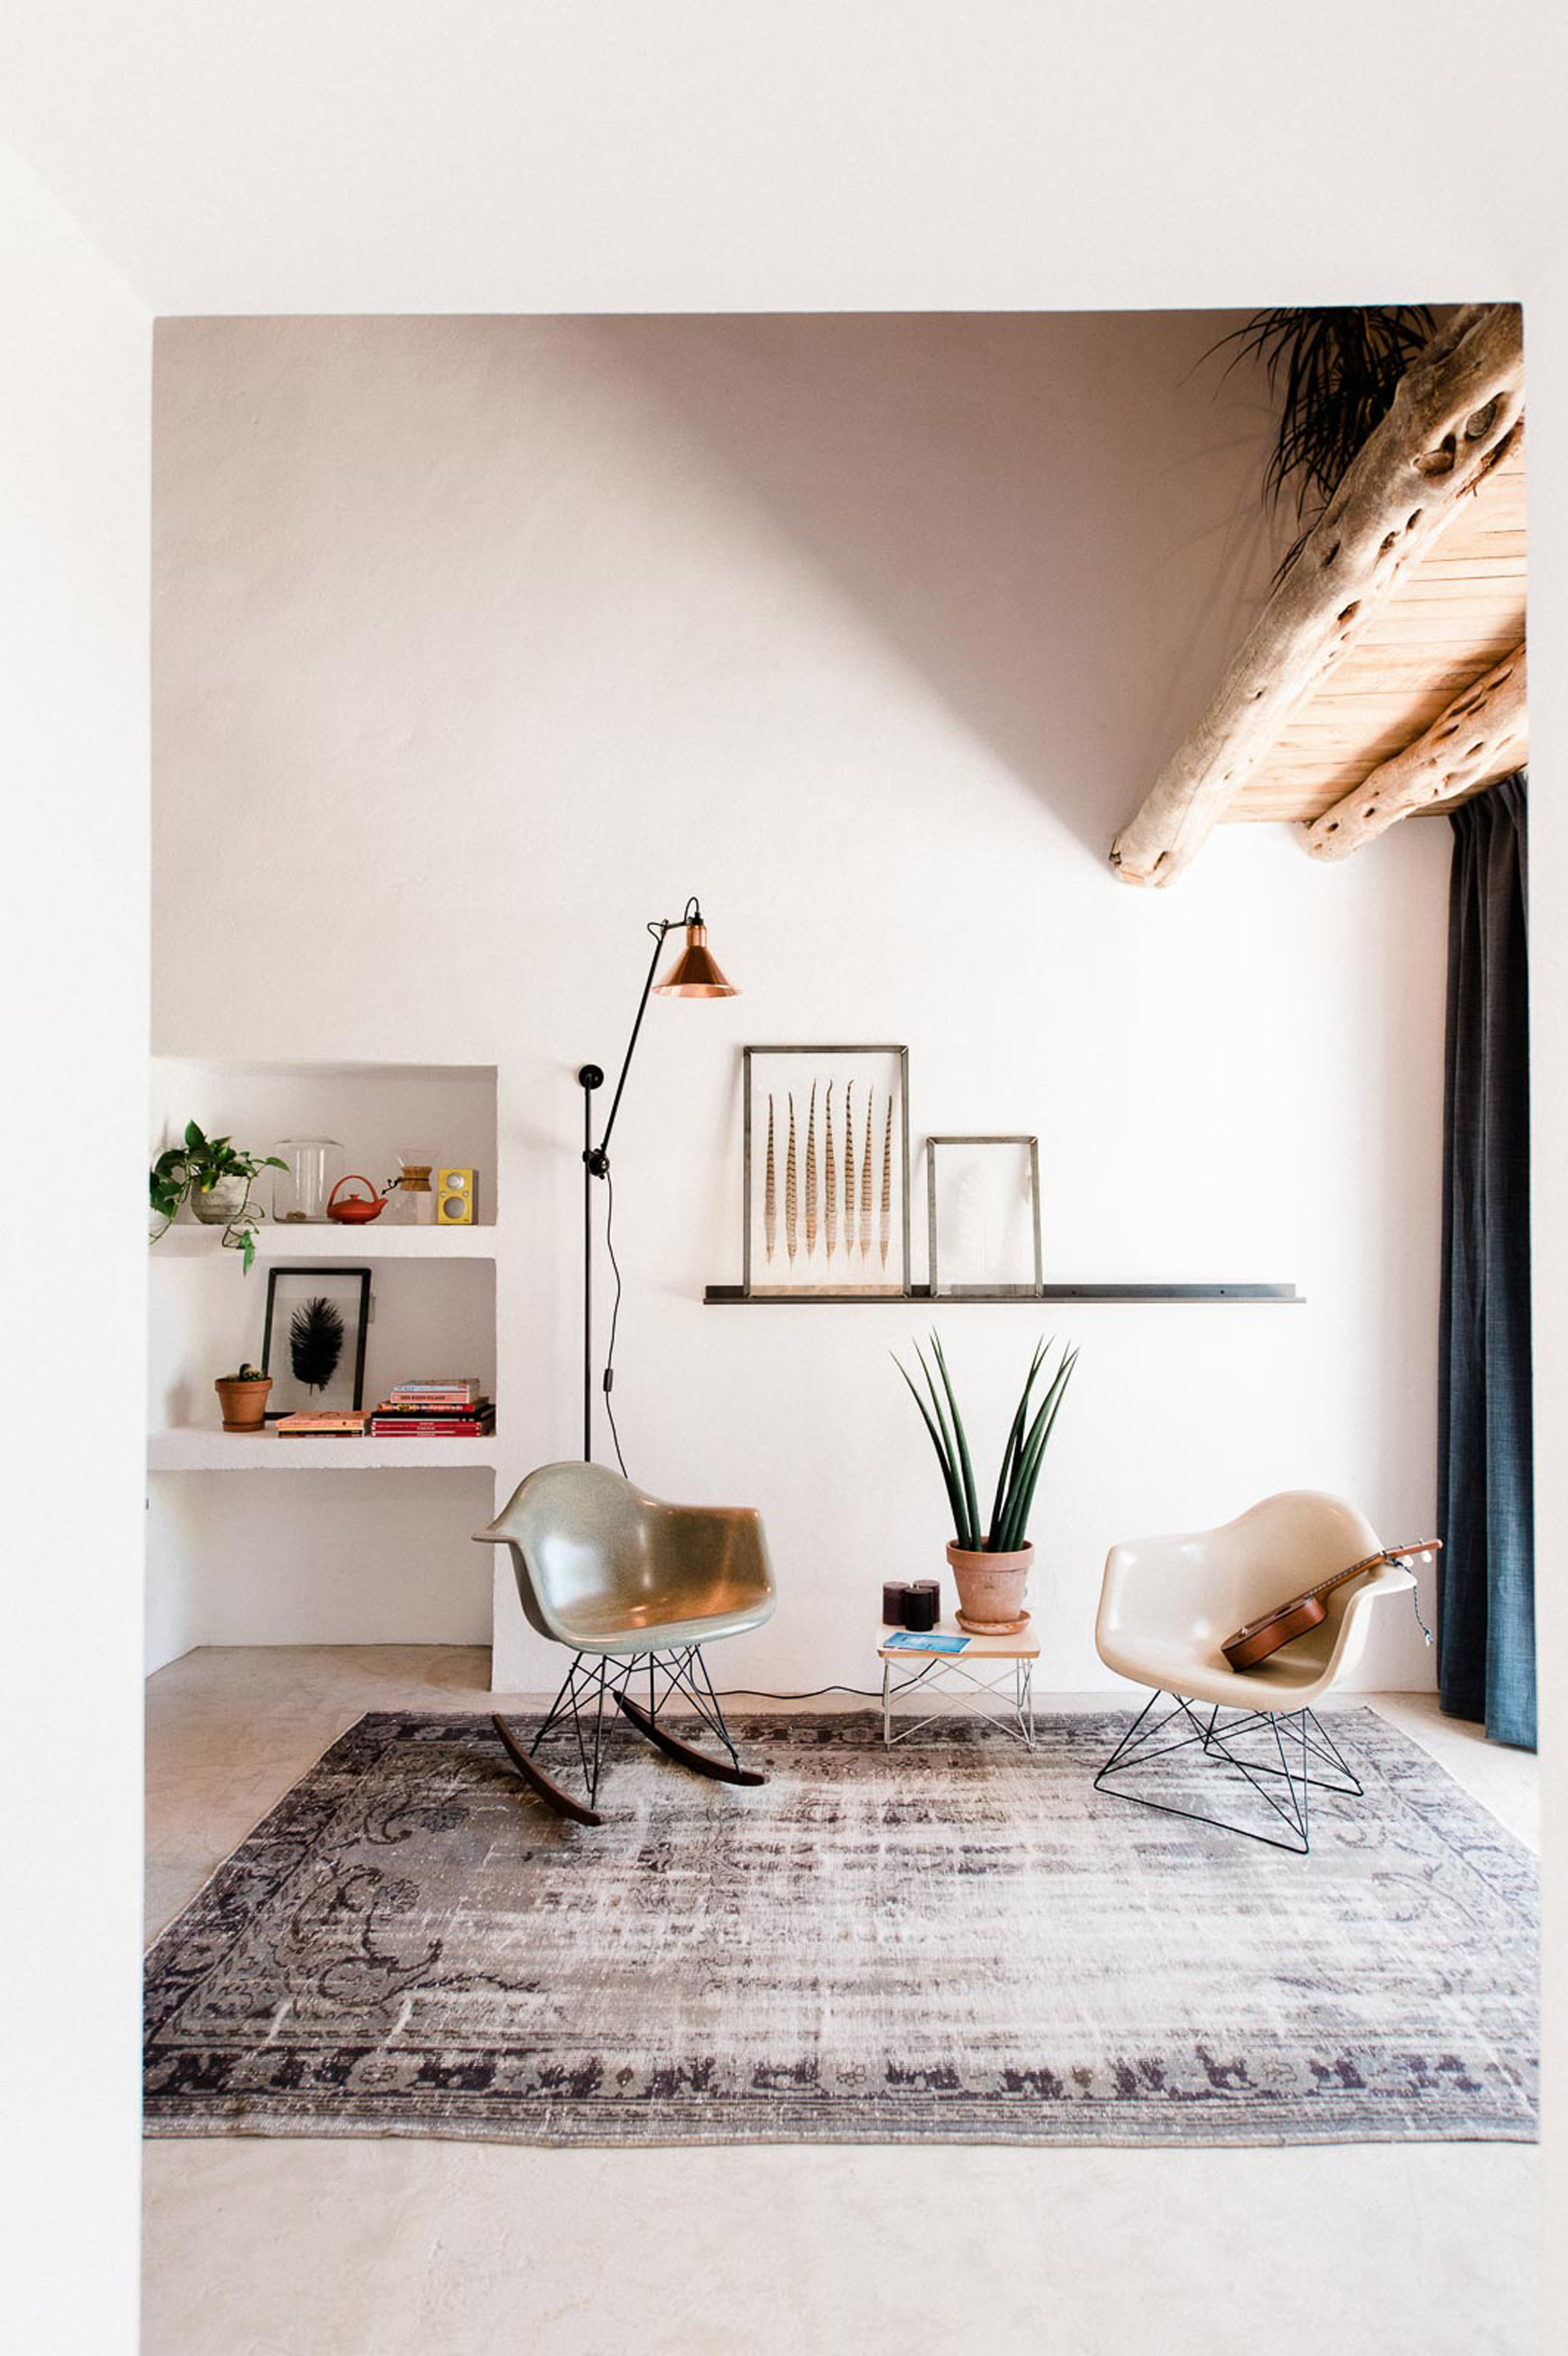 4. Transformation from stable to guesthouse in Ibiza by Standard Studio - Transformation from stable to guesthouse in Ibiza by Standard Studio